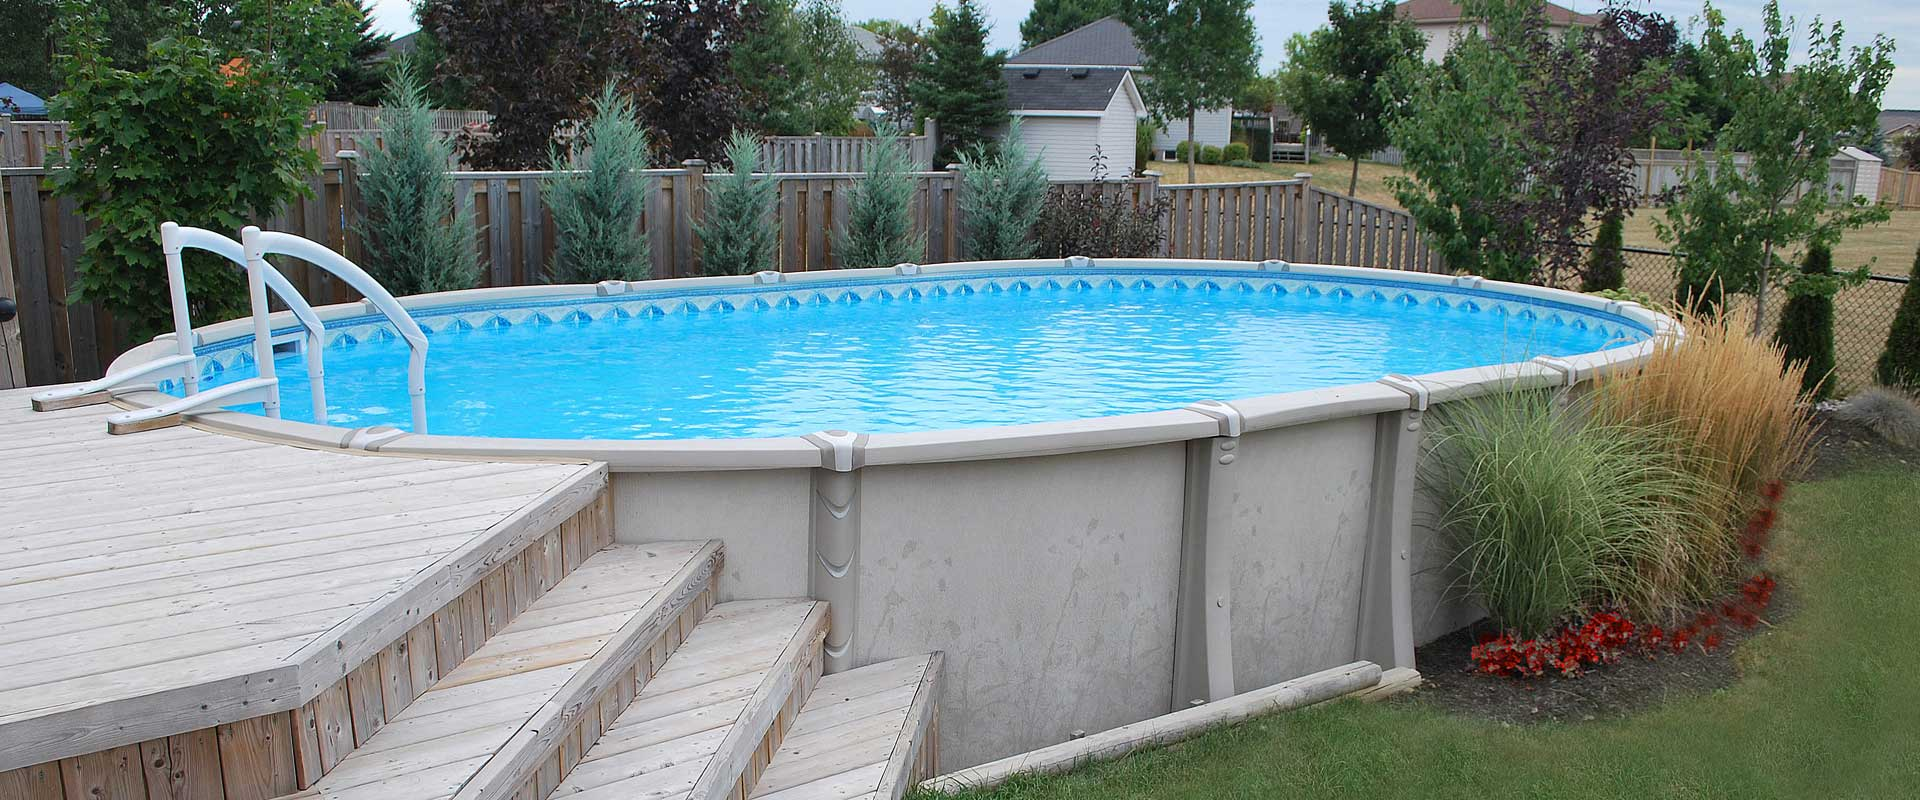 Pool Above Ground Pools Resin Steel Pioneer Family Pools